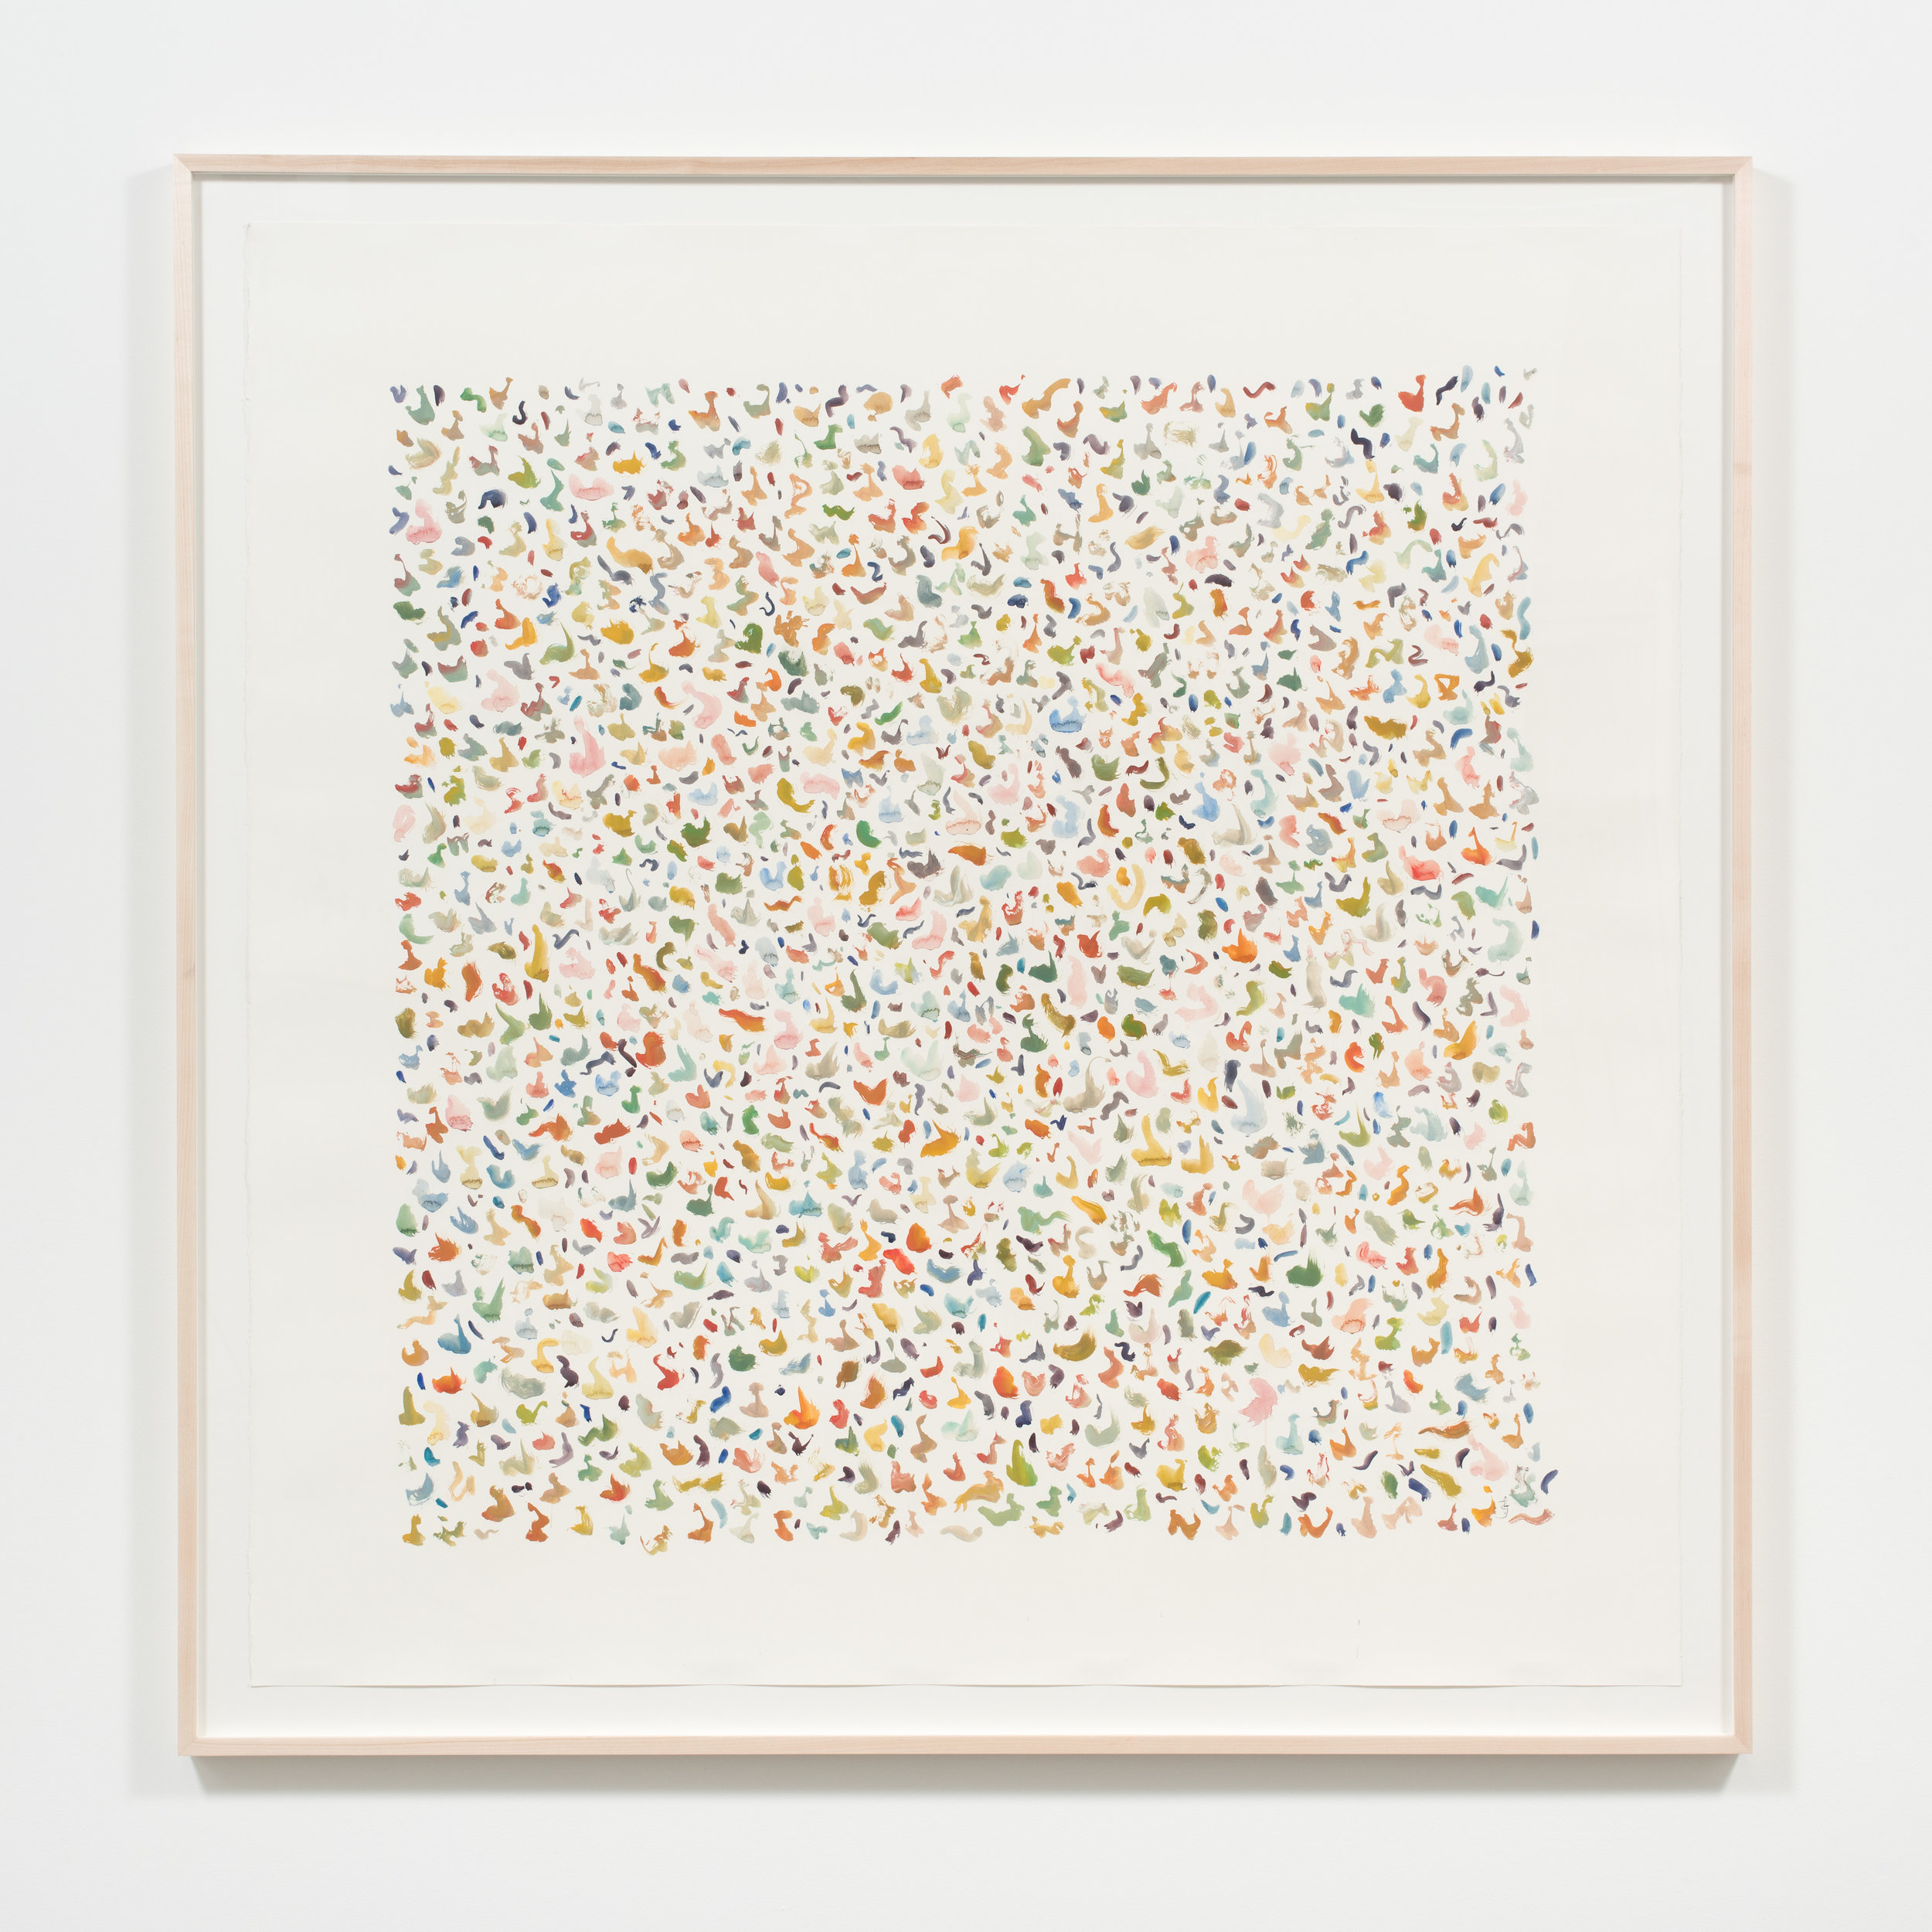 Alexa Guariglia  Terrazzo , 2017 Gouache, ink, and watercolor on paper 67 x 66 inches